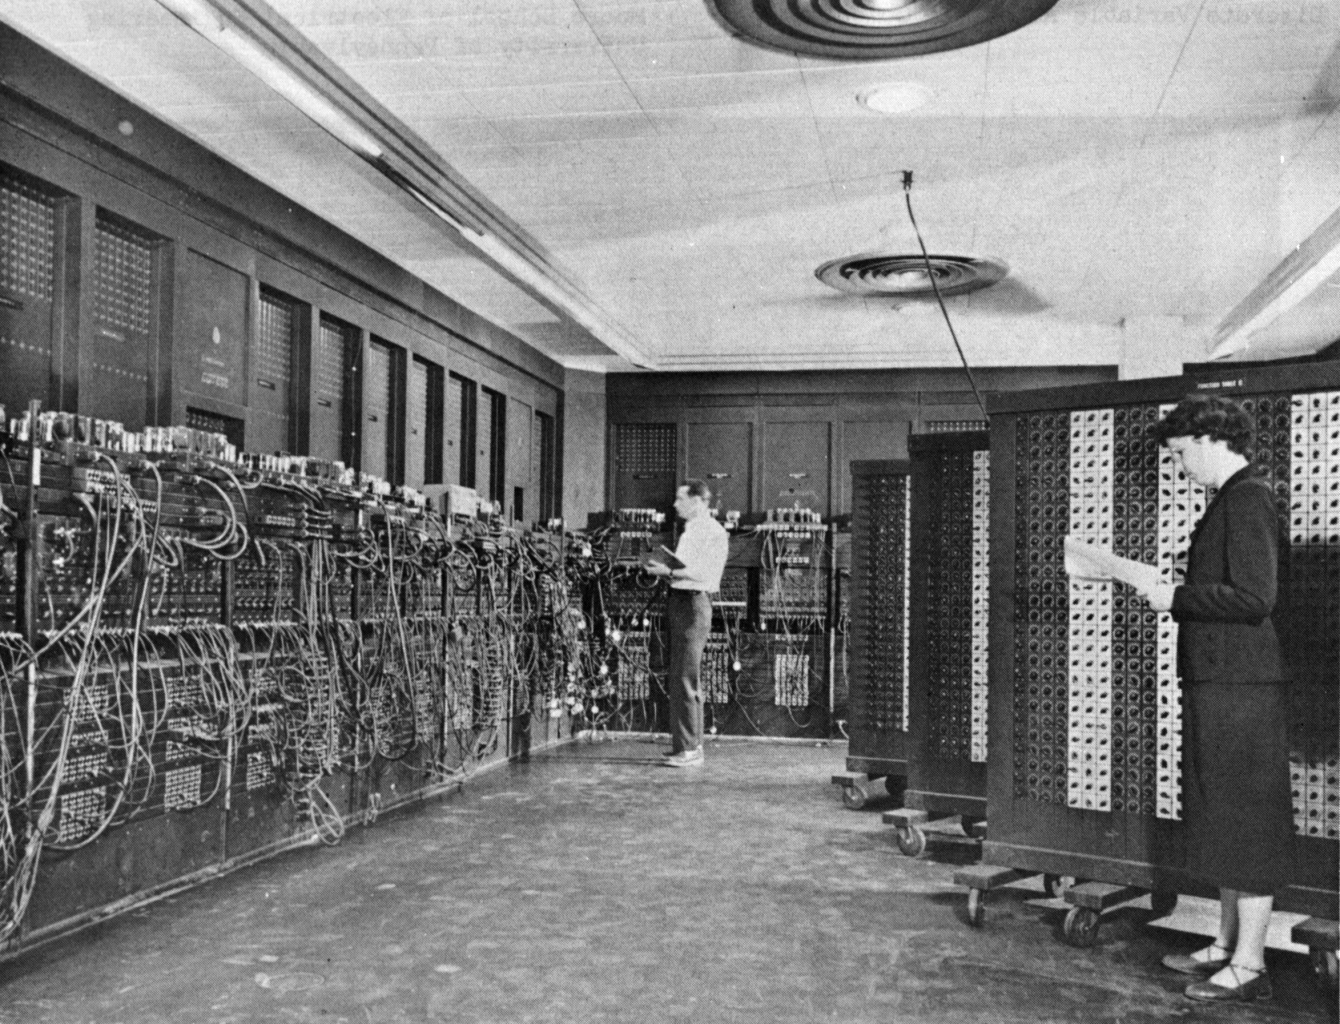 Glen Beck et Betty Snyder en train de programmer l'ENIAC (Electronic Numerical Integrator And Computer) à Philadelphie (USA) (photo prise entre 1947 et 1955, Wikipedia ENIAC).